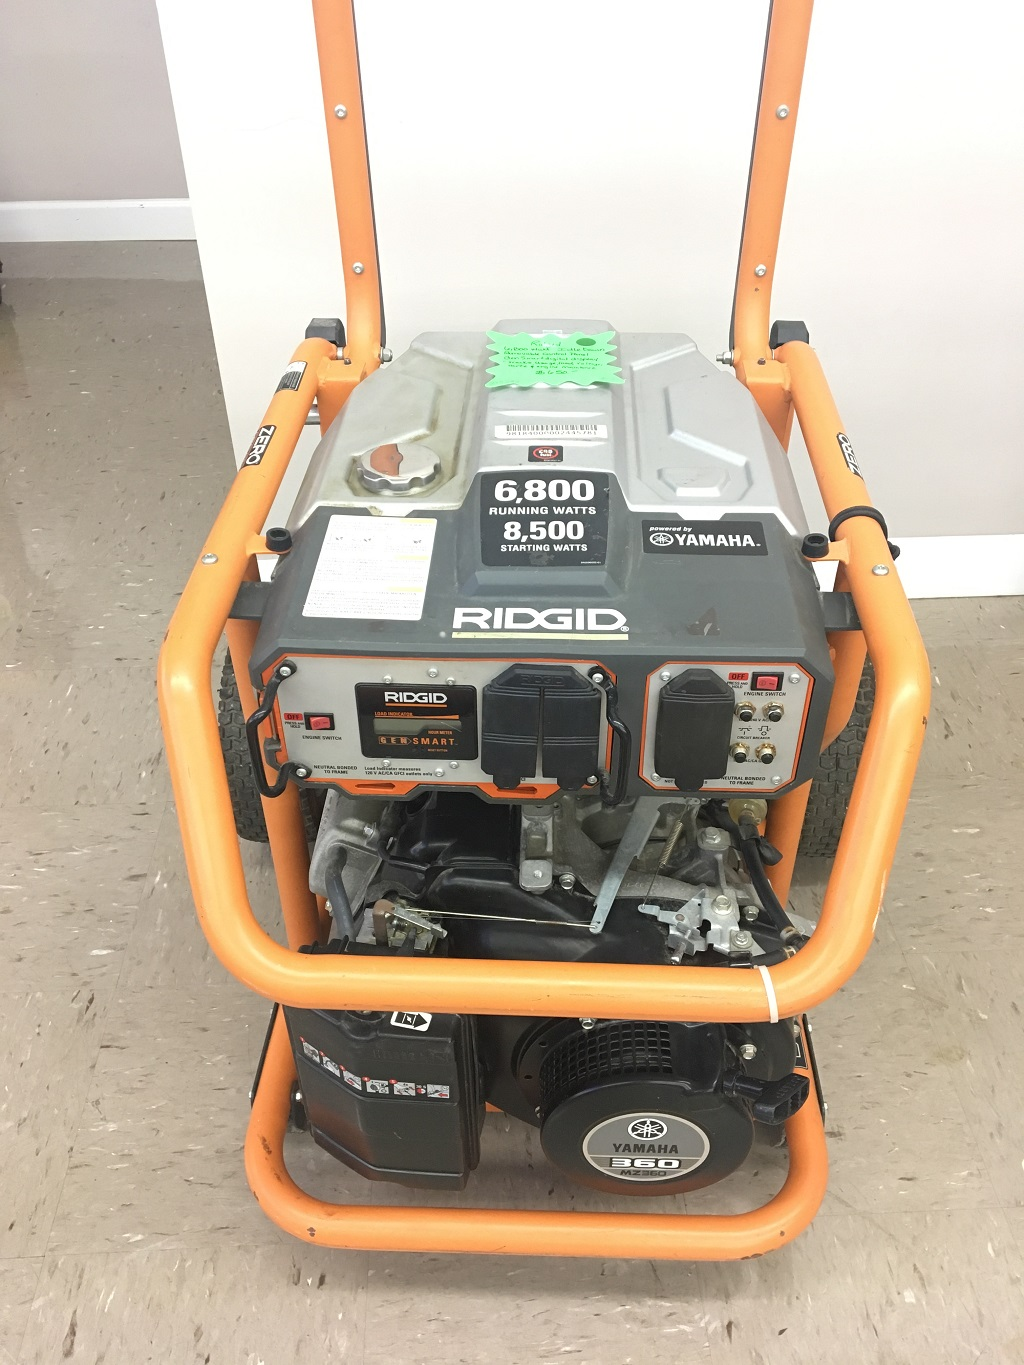 Ridgid 6,800 running watts & 8,500 starting watts.